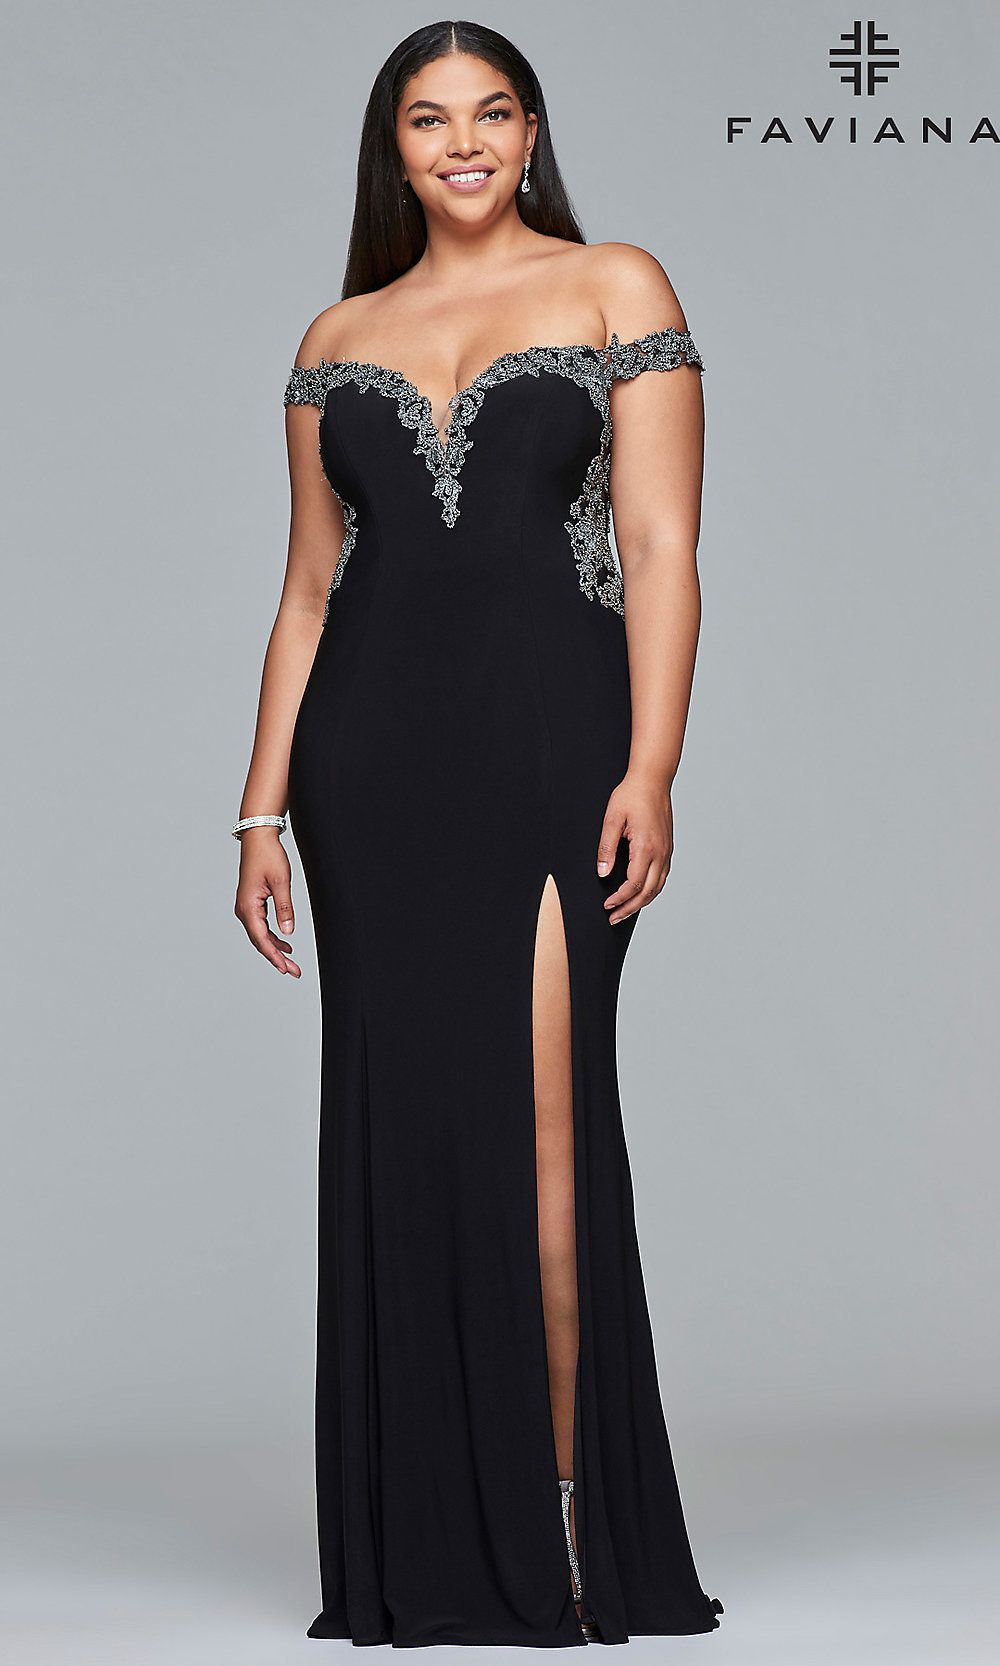 822f83b5abda Plus-Size Prom Dress with an Off-the-Shoulder Neckline in 2019 ...